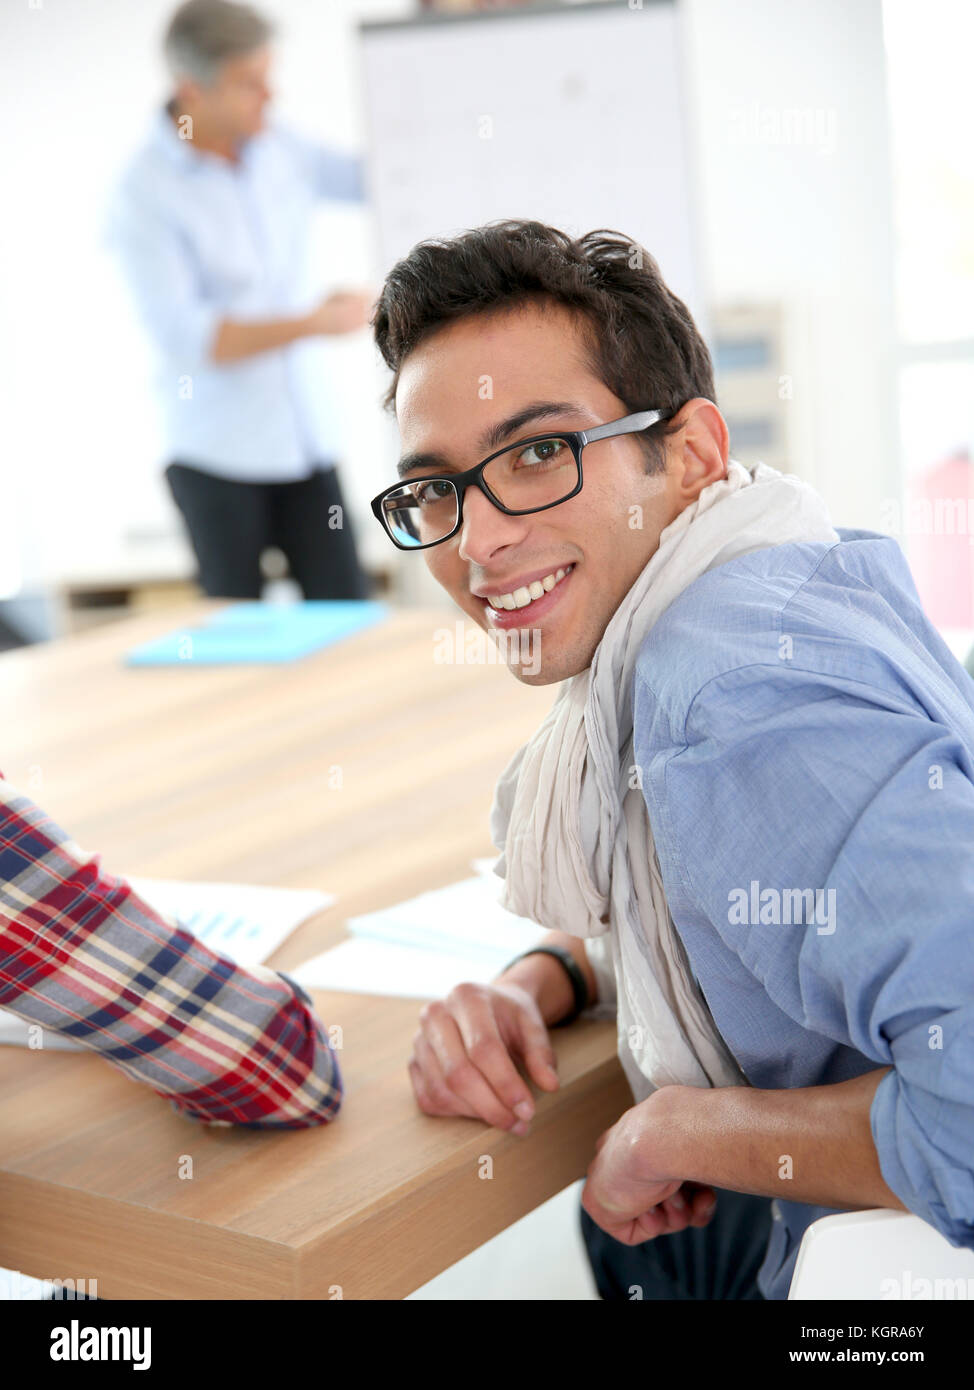 Portrait of student in conference room - Stock Image